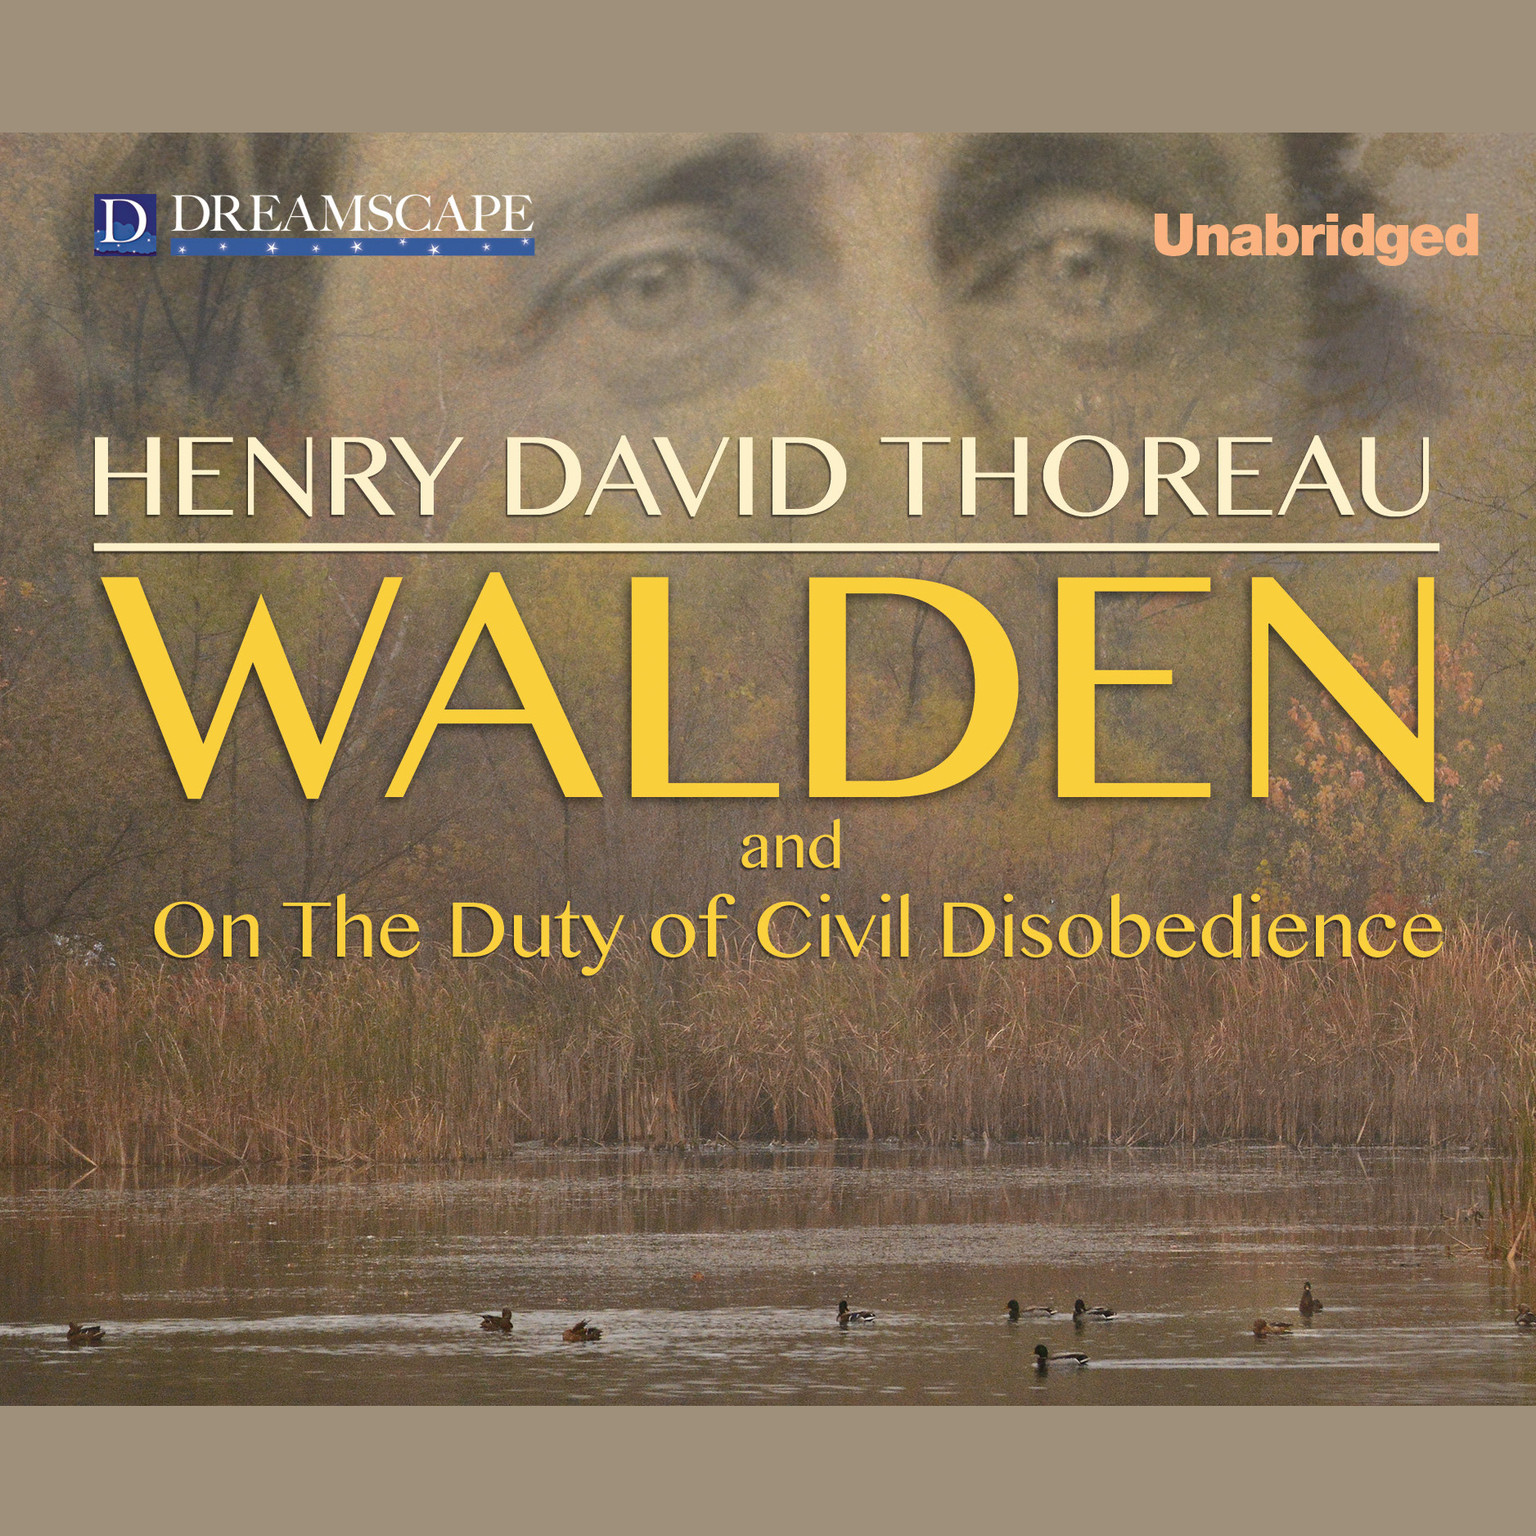 essay on the duty of civil disobedience thoreau Henry david thoreau sets the tone throughout the document on duty of civil disobedience by maintaining a very serious tone thoreau states his opinions regarding how the united states government should be run.